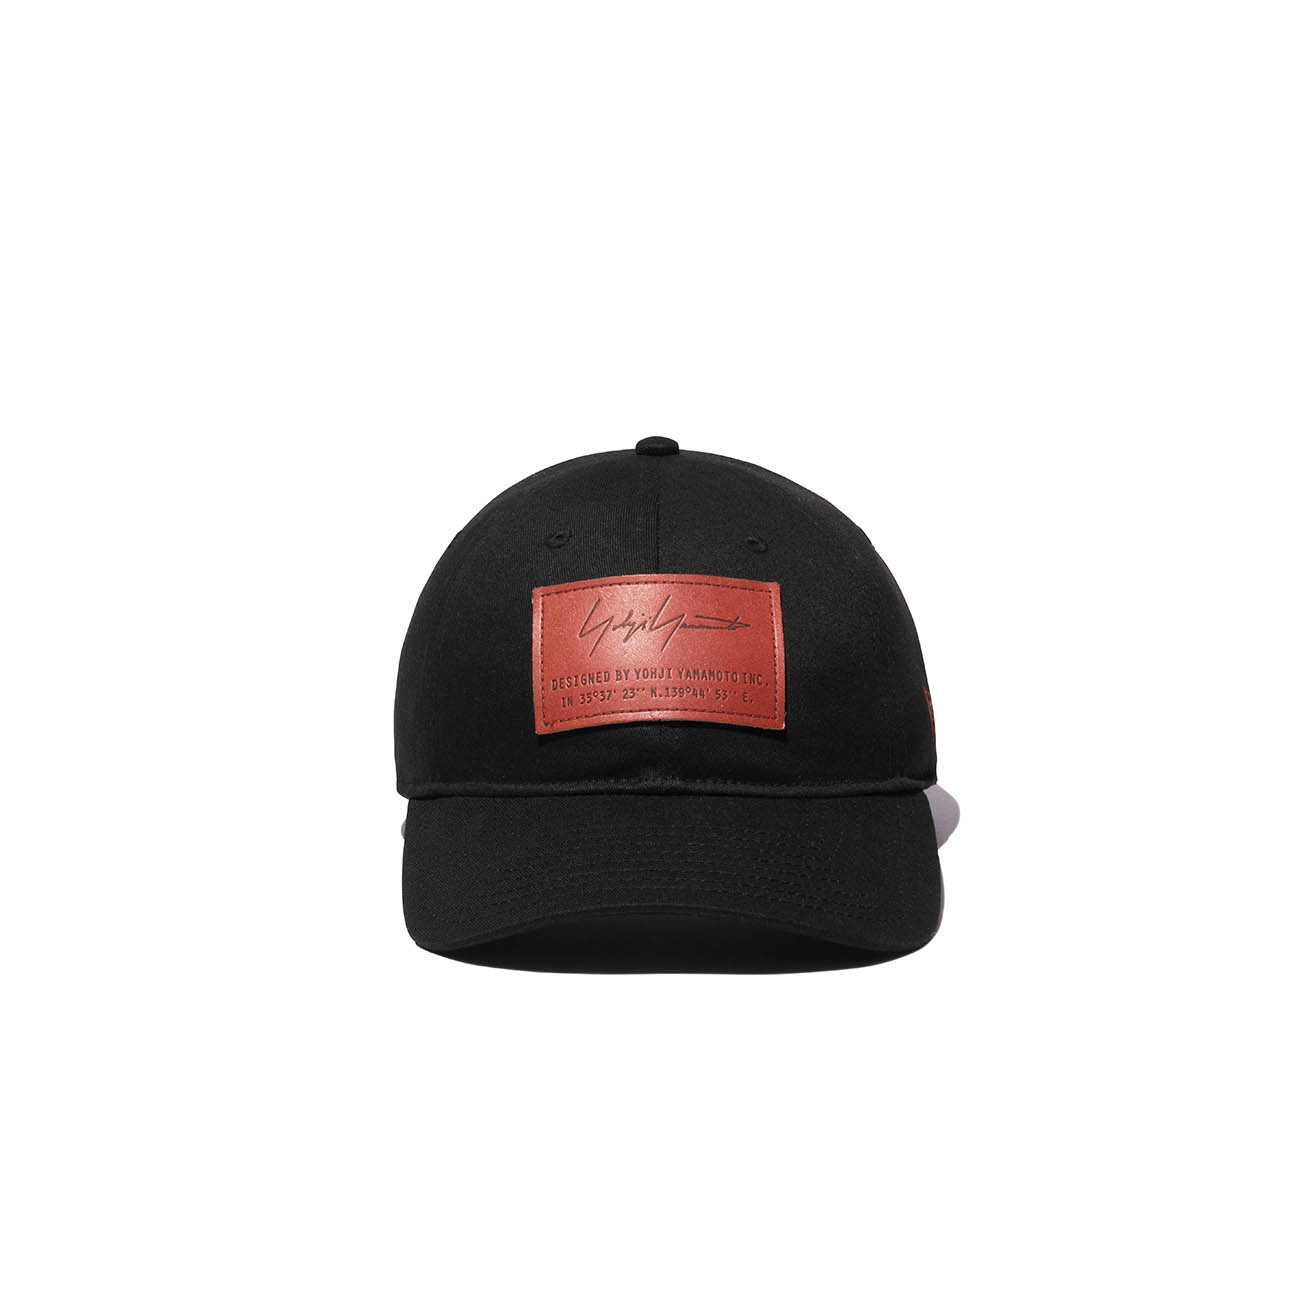 Yohji Yamamoto × New Era 9THIRTY BLACK COTTON LEATHER PATCH BROWN